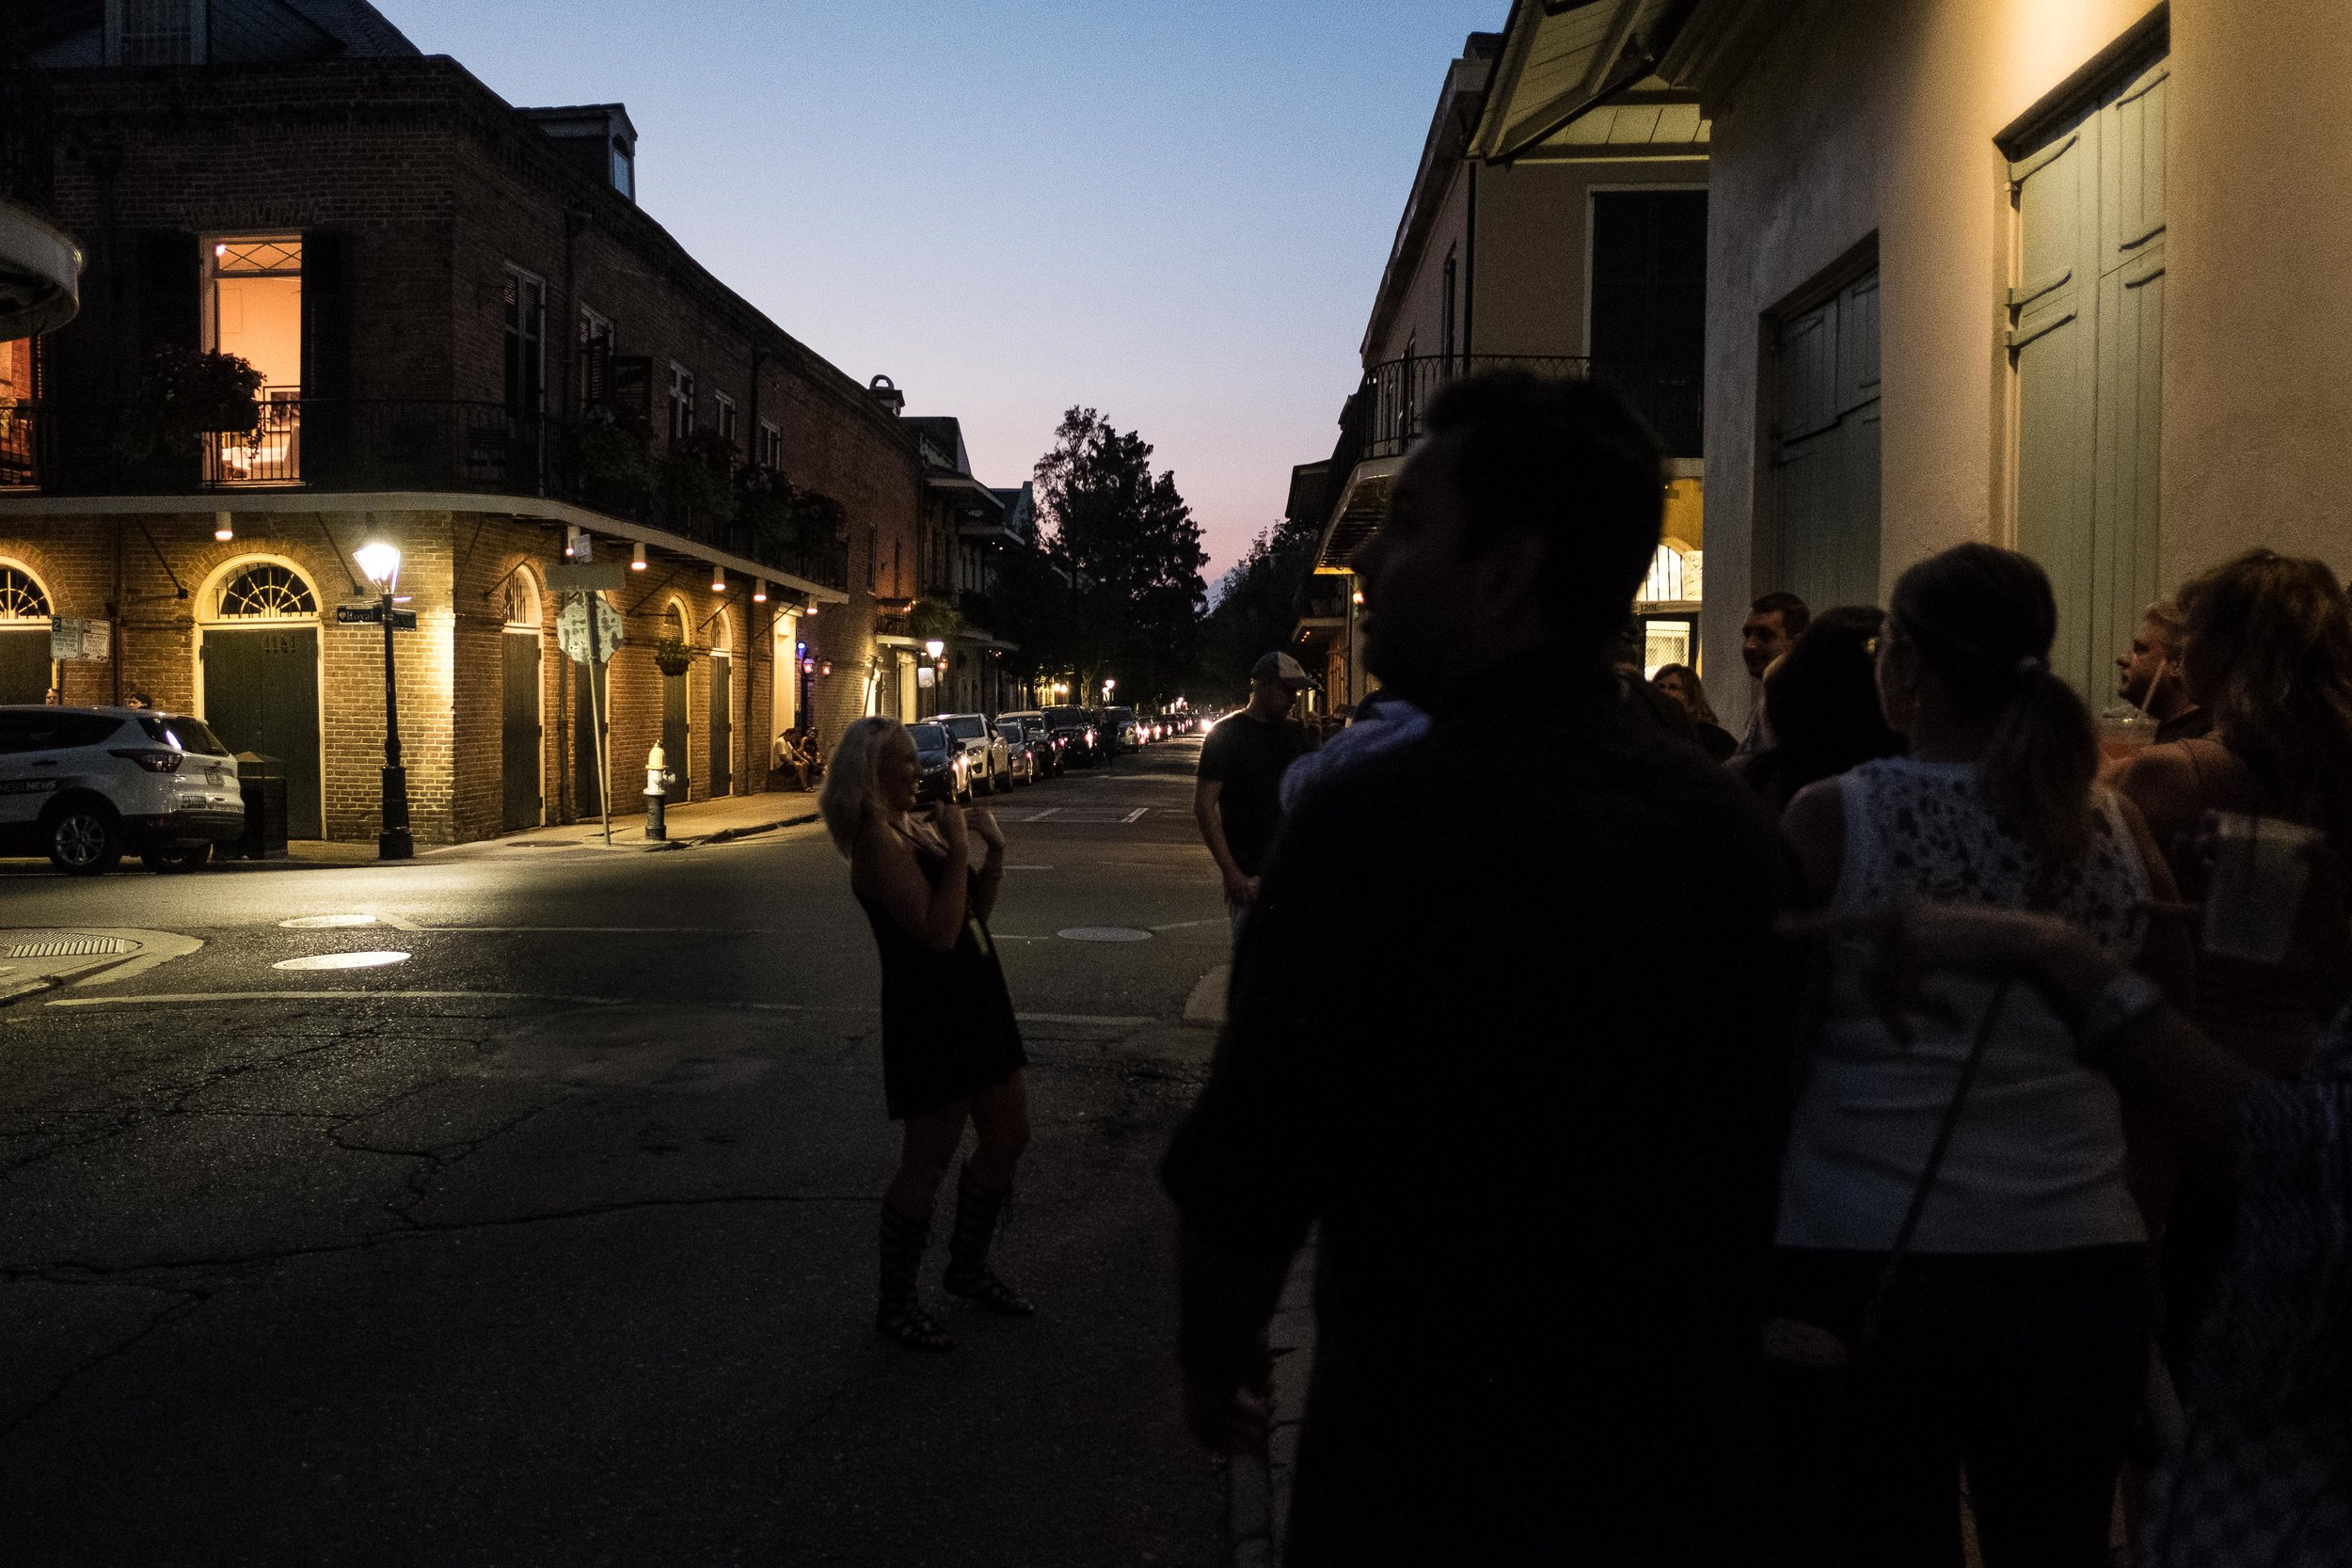 Being in NOLA, we figured we should sign up for the Drunk History tour. Not sure we learned much but it was an entertaining walk around the French Quarter.